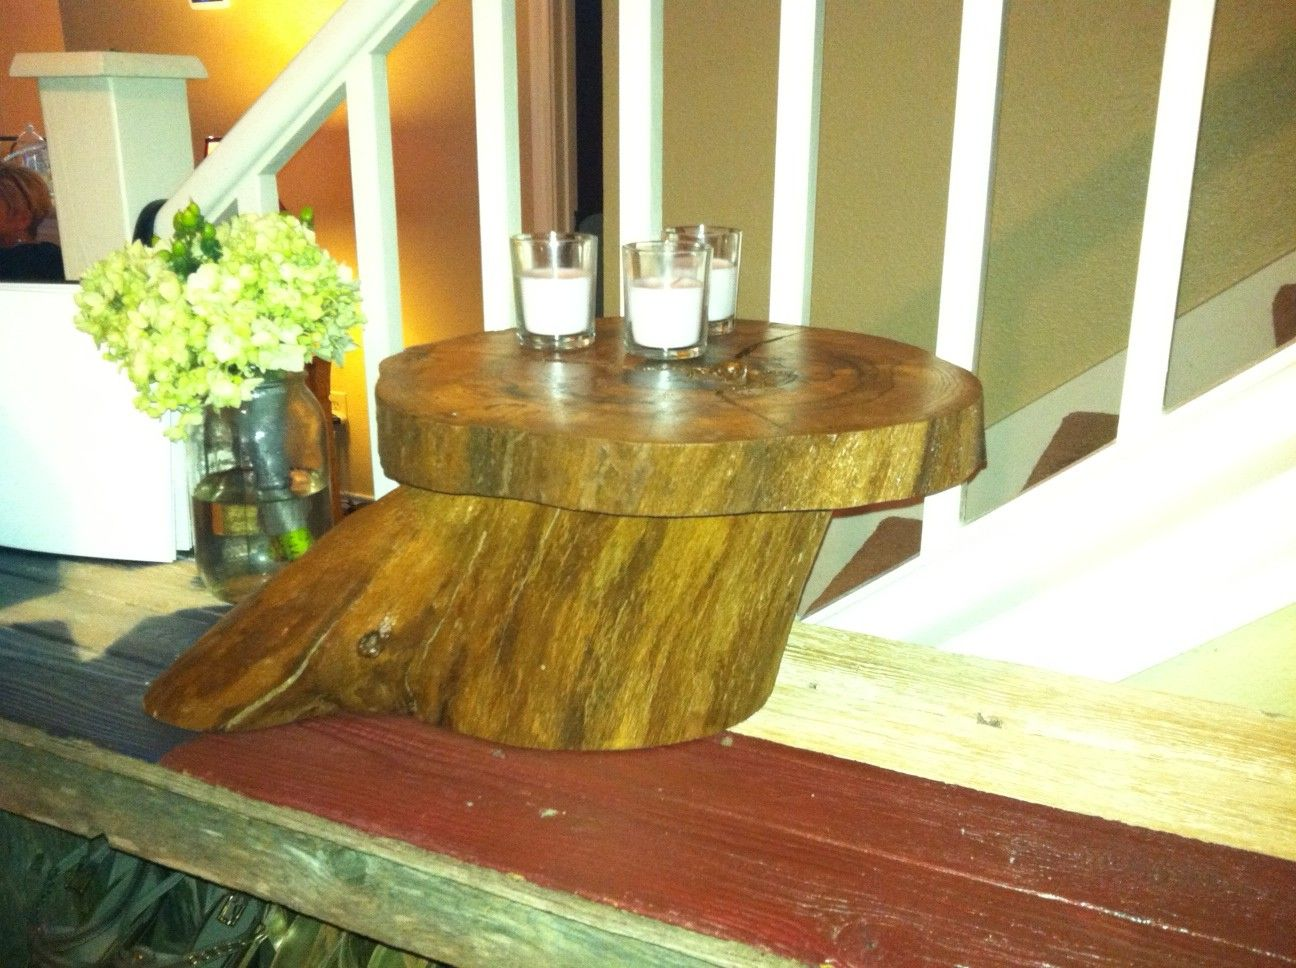 Cake Stand or could be used for other things